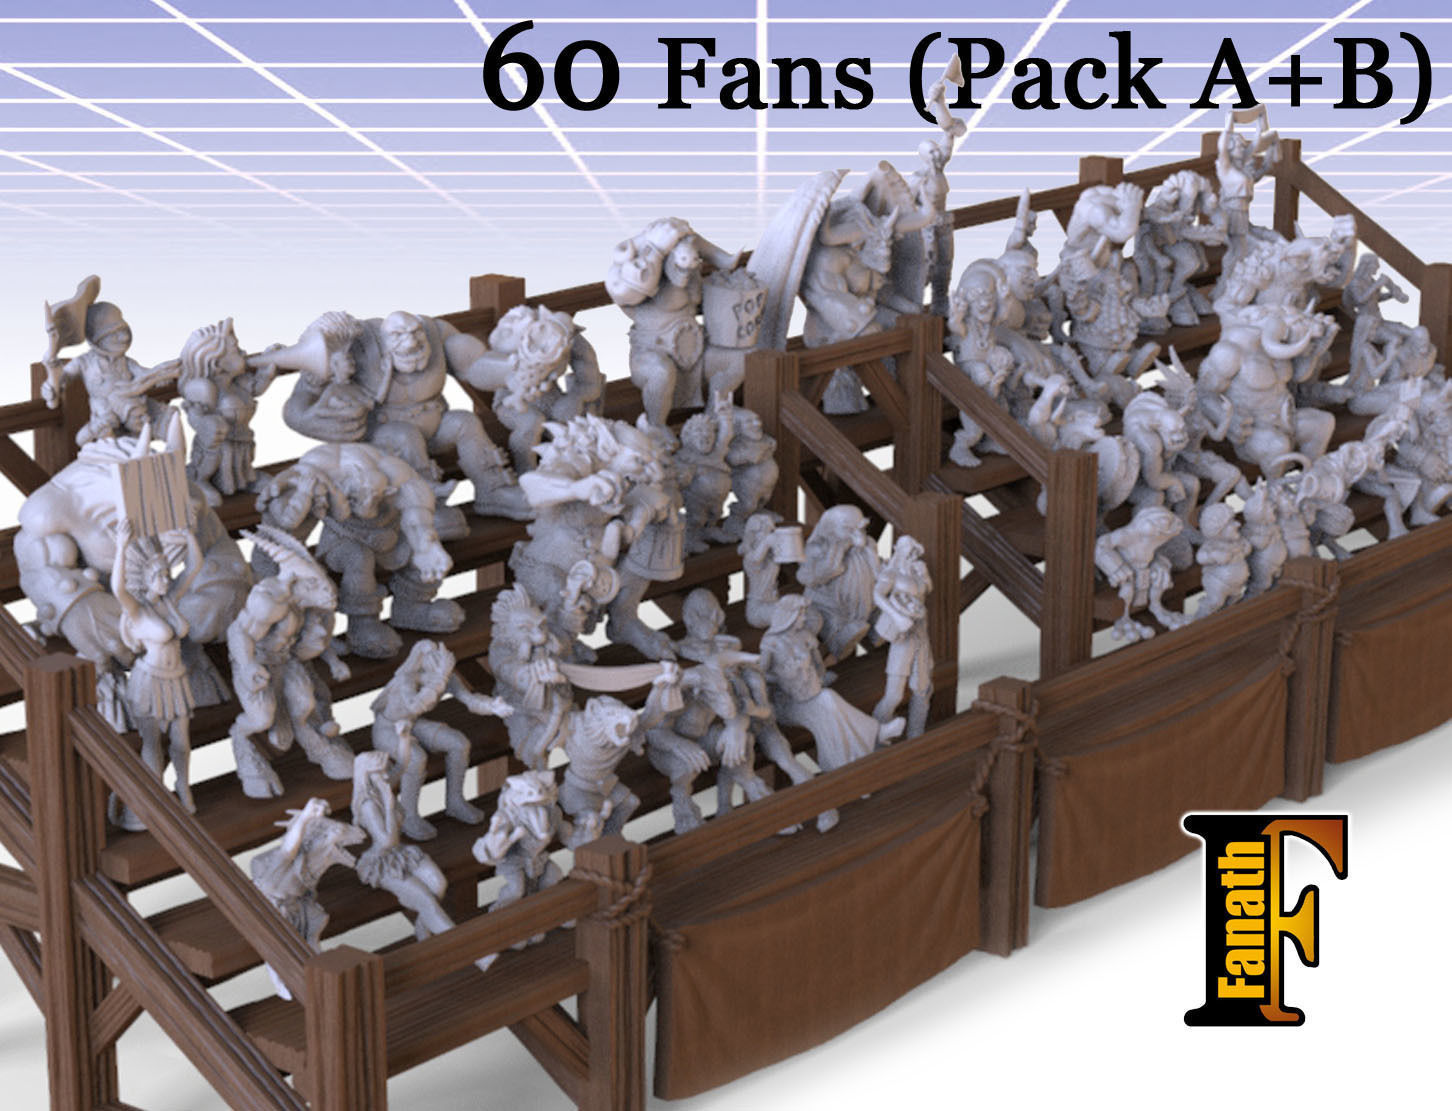 Fans Full Pack - Pack A and B